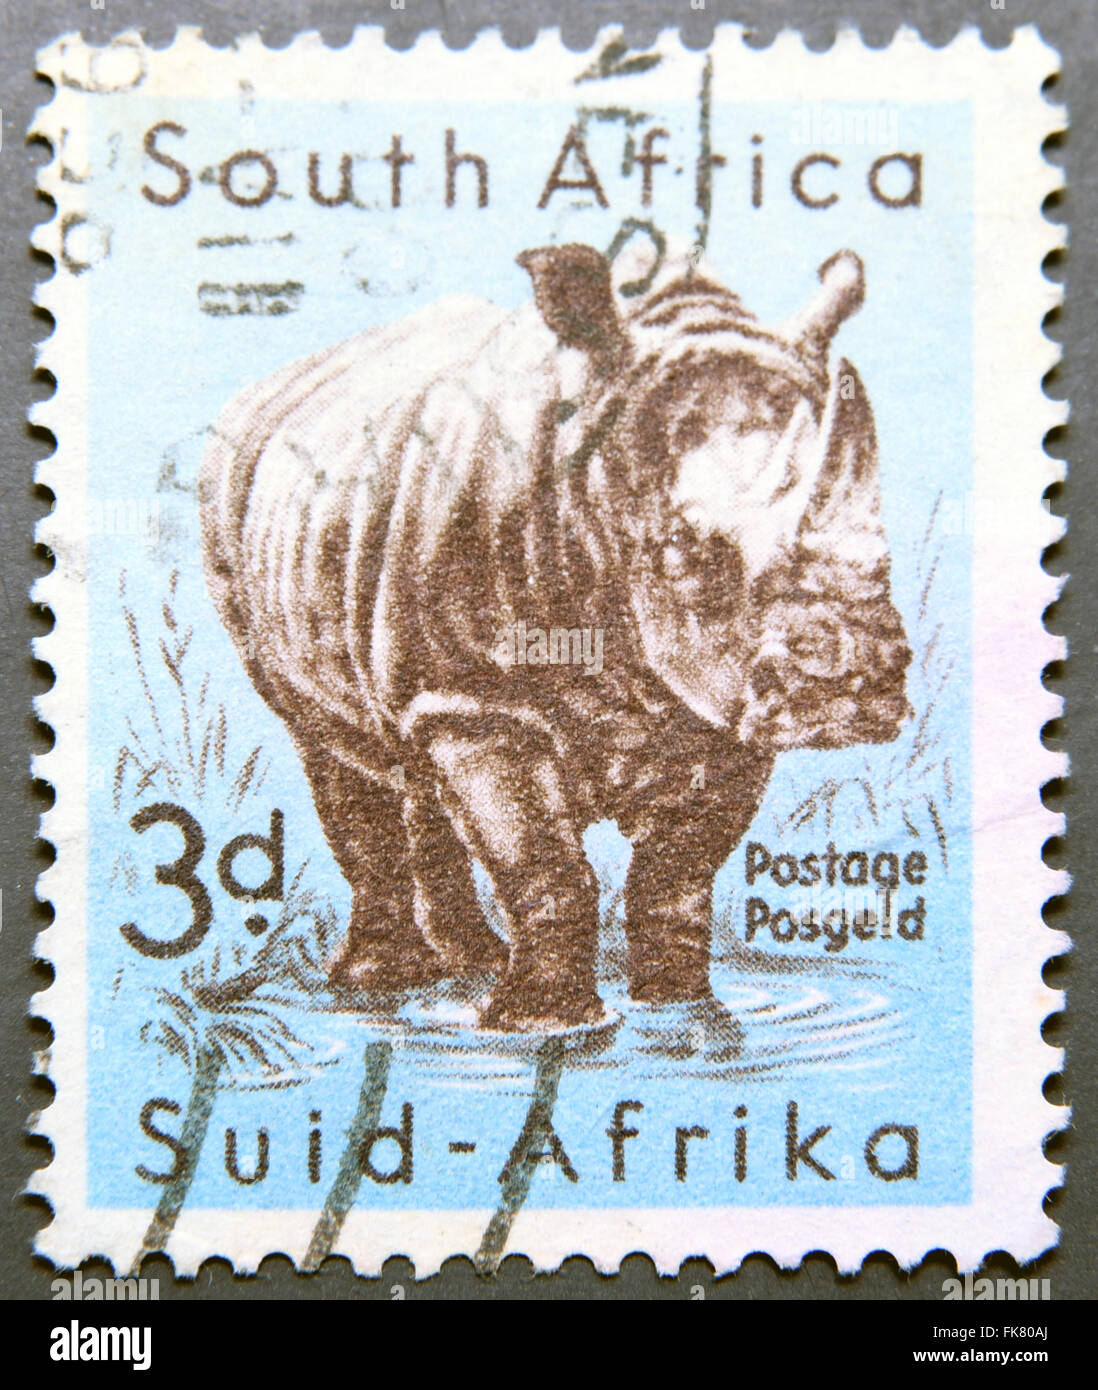 SOUTH AFRICA - CIRCA 1954: A stamp printed in South Africa shows White Rhinoceros , circa 1954 - Stock Image